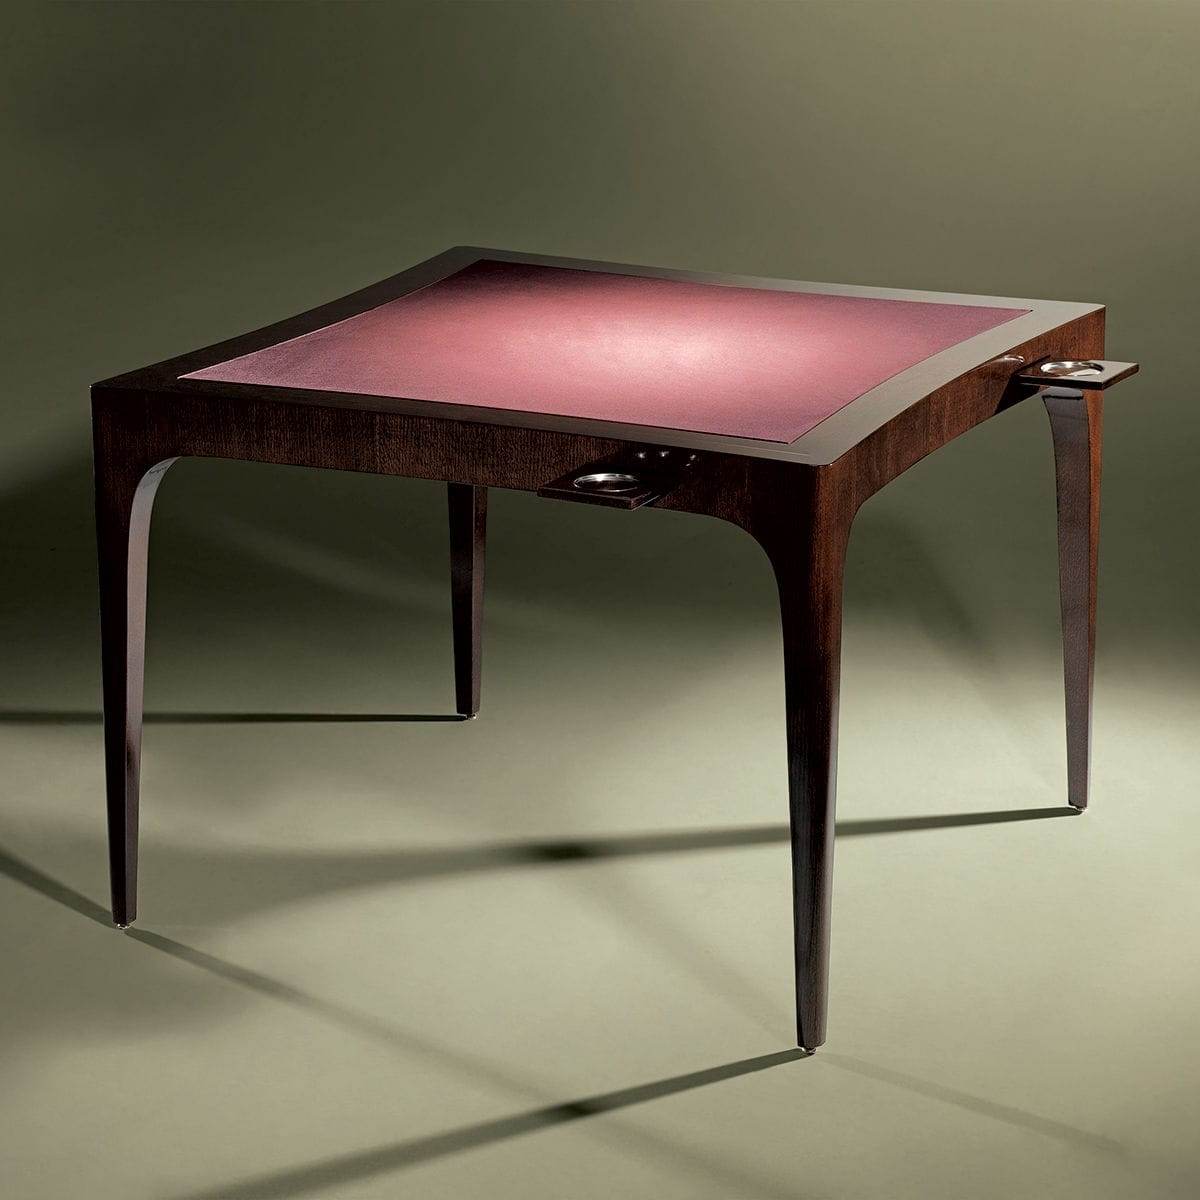 Contemporary Dining Table / Wooden / Rectangular - Curve - Luisa throughout Contemporary Curves Coffee Tables (Image 9 of 30)